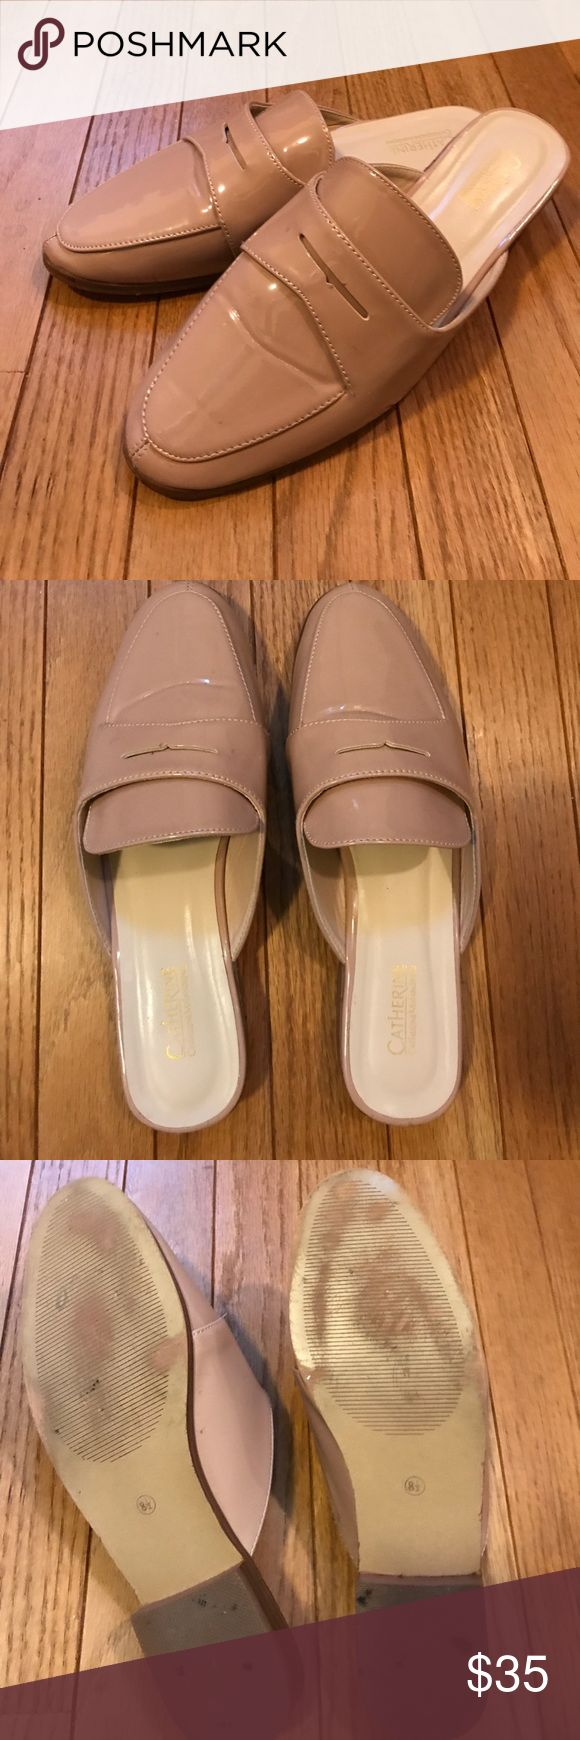 Catherine Malandrino loafer slides Super cute blush pink loafer slides from Catherine Malandrino. Worn twice as seen from sole. Recent purchase. Please comment for additional information. Catherine Malandrino Shoes Flats & Loafers